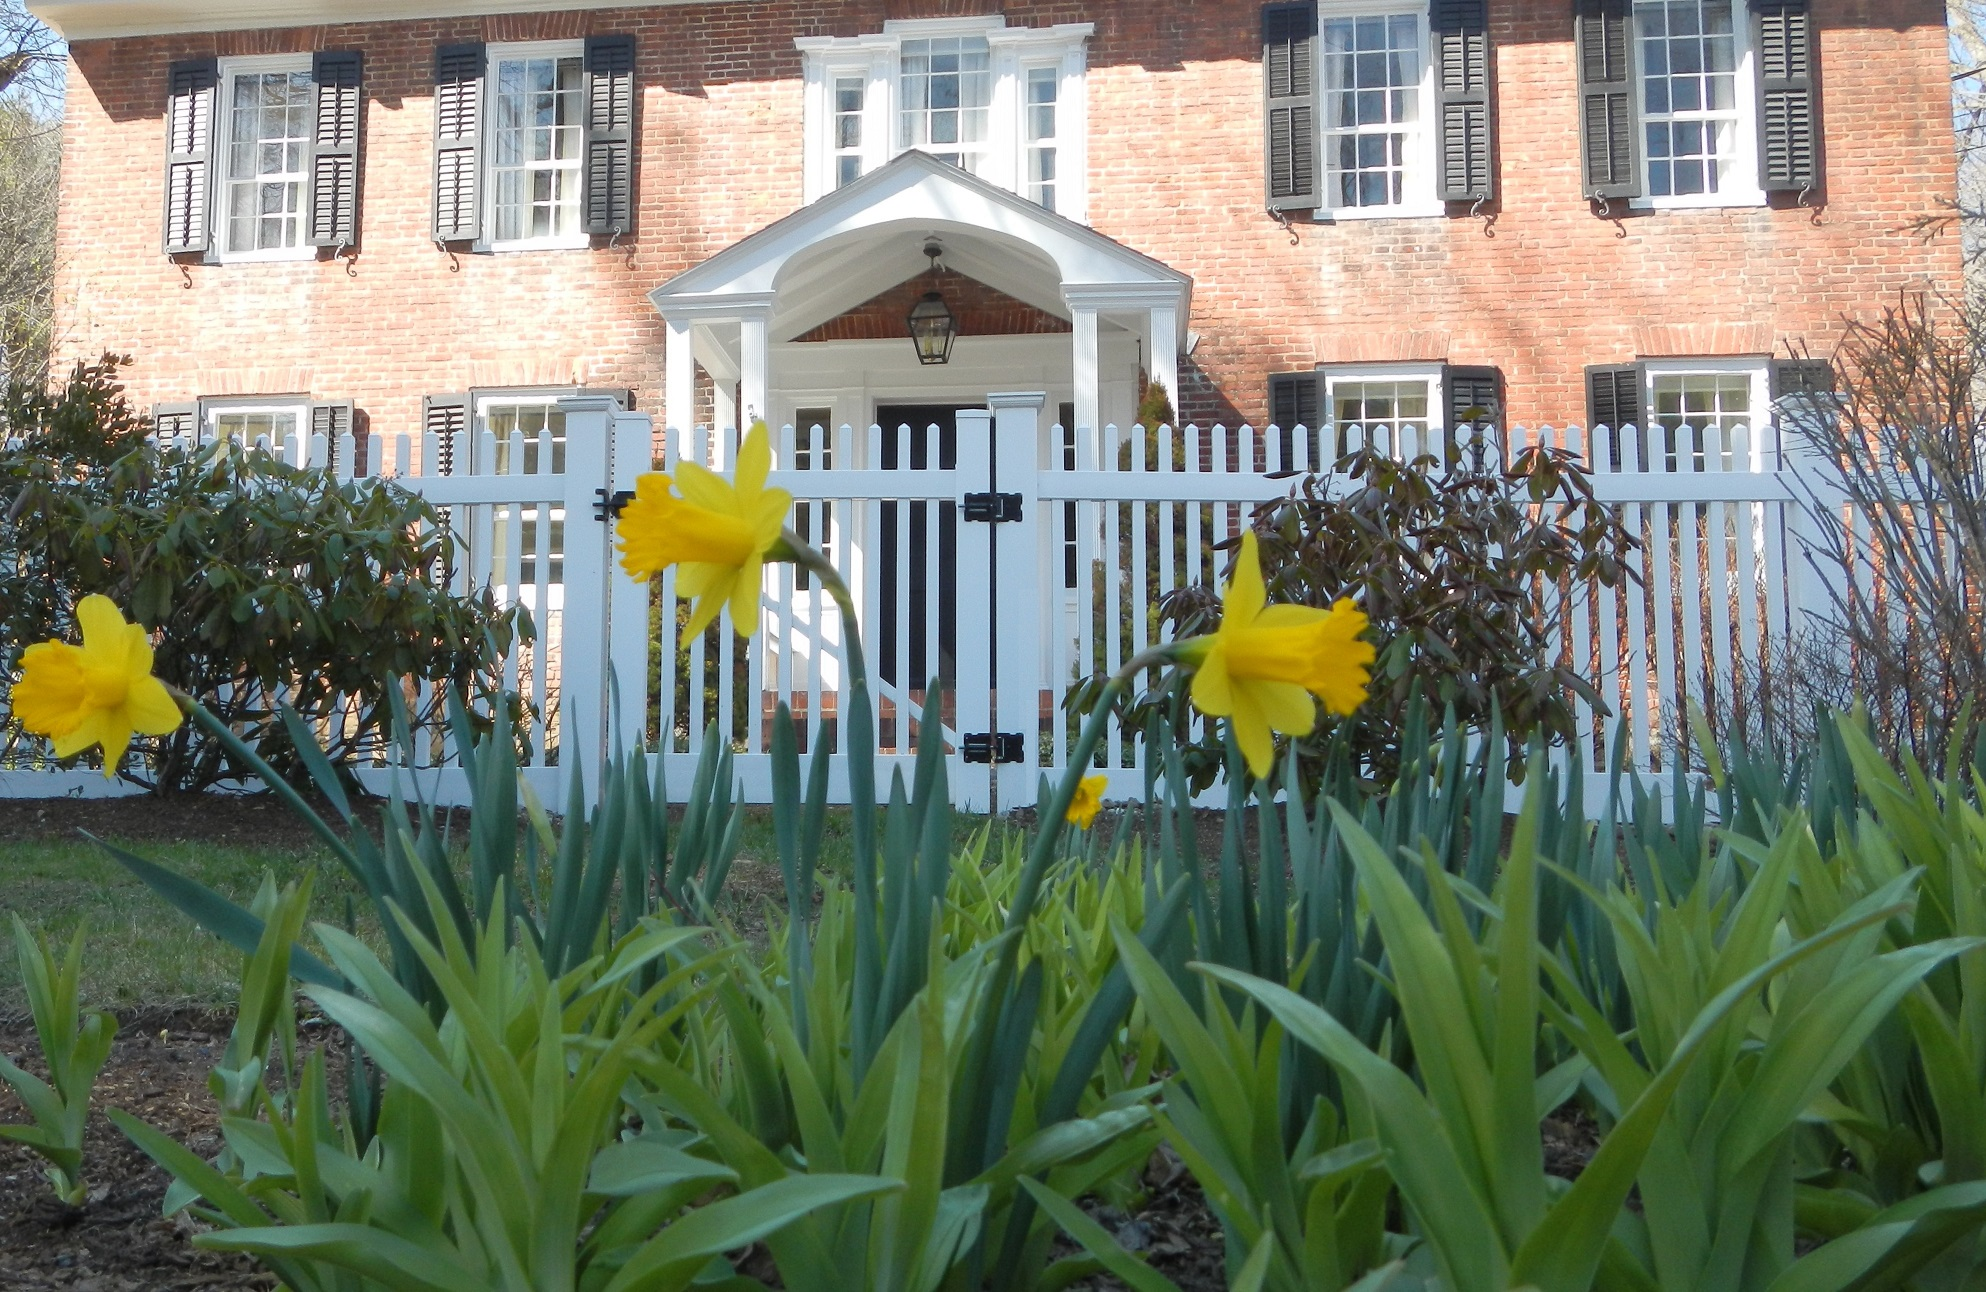 Daffodils emerge in the spring at Country House